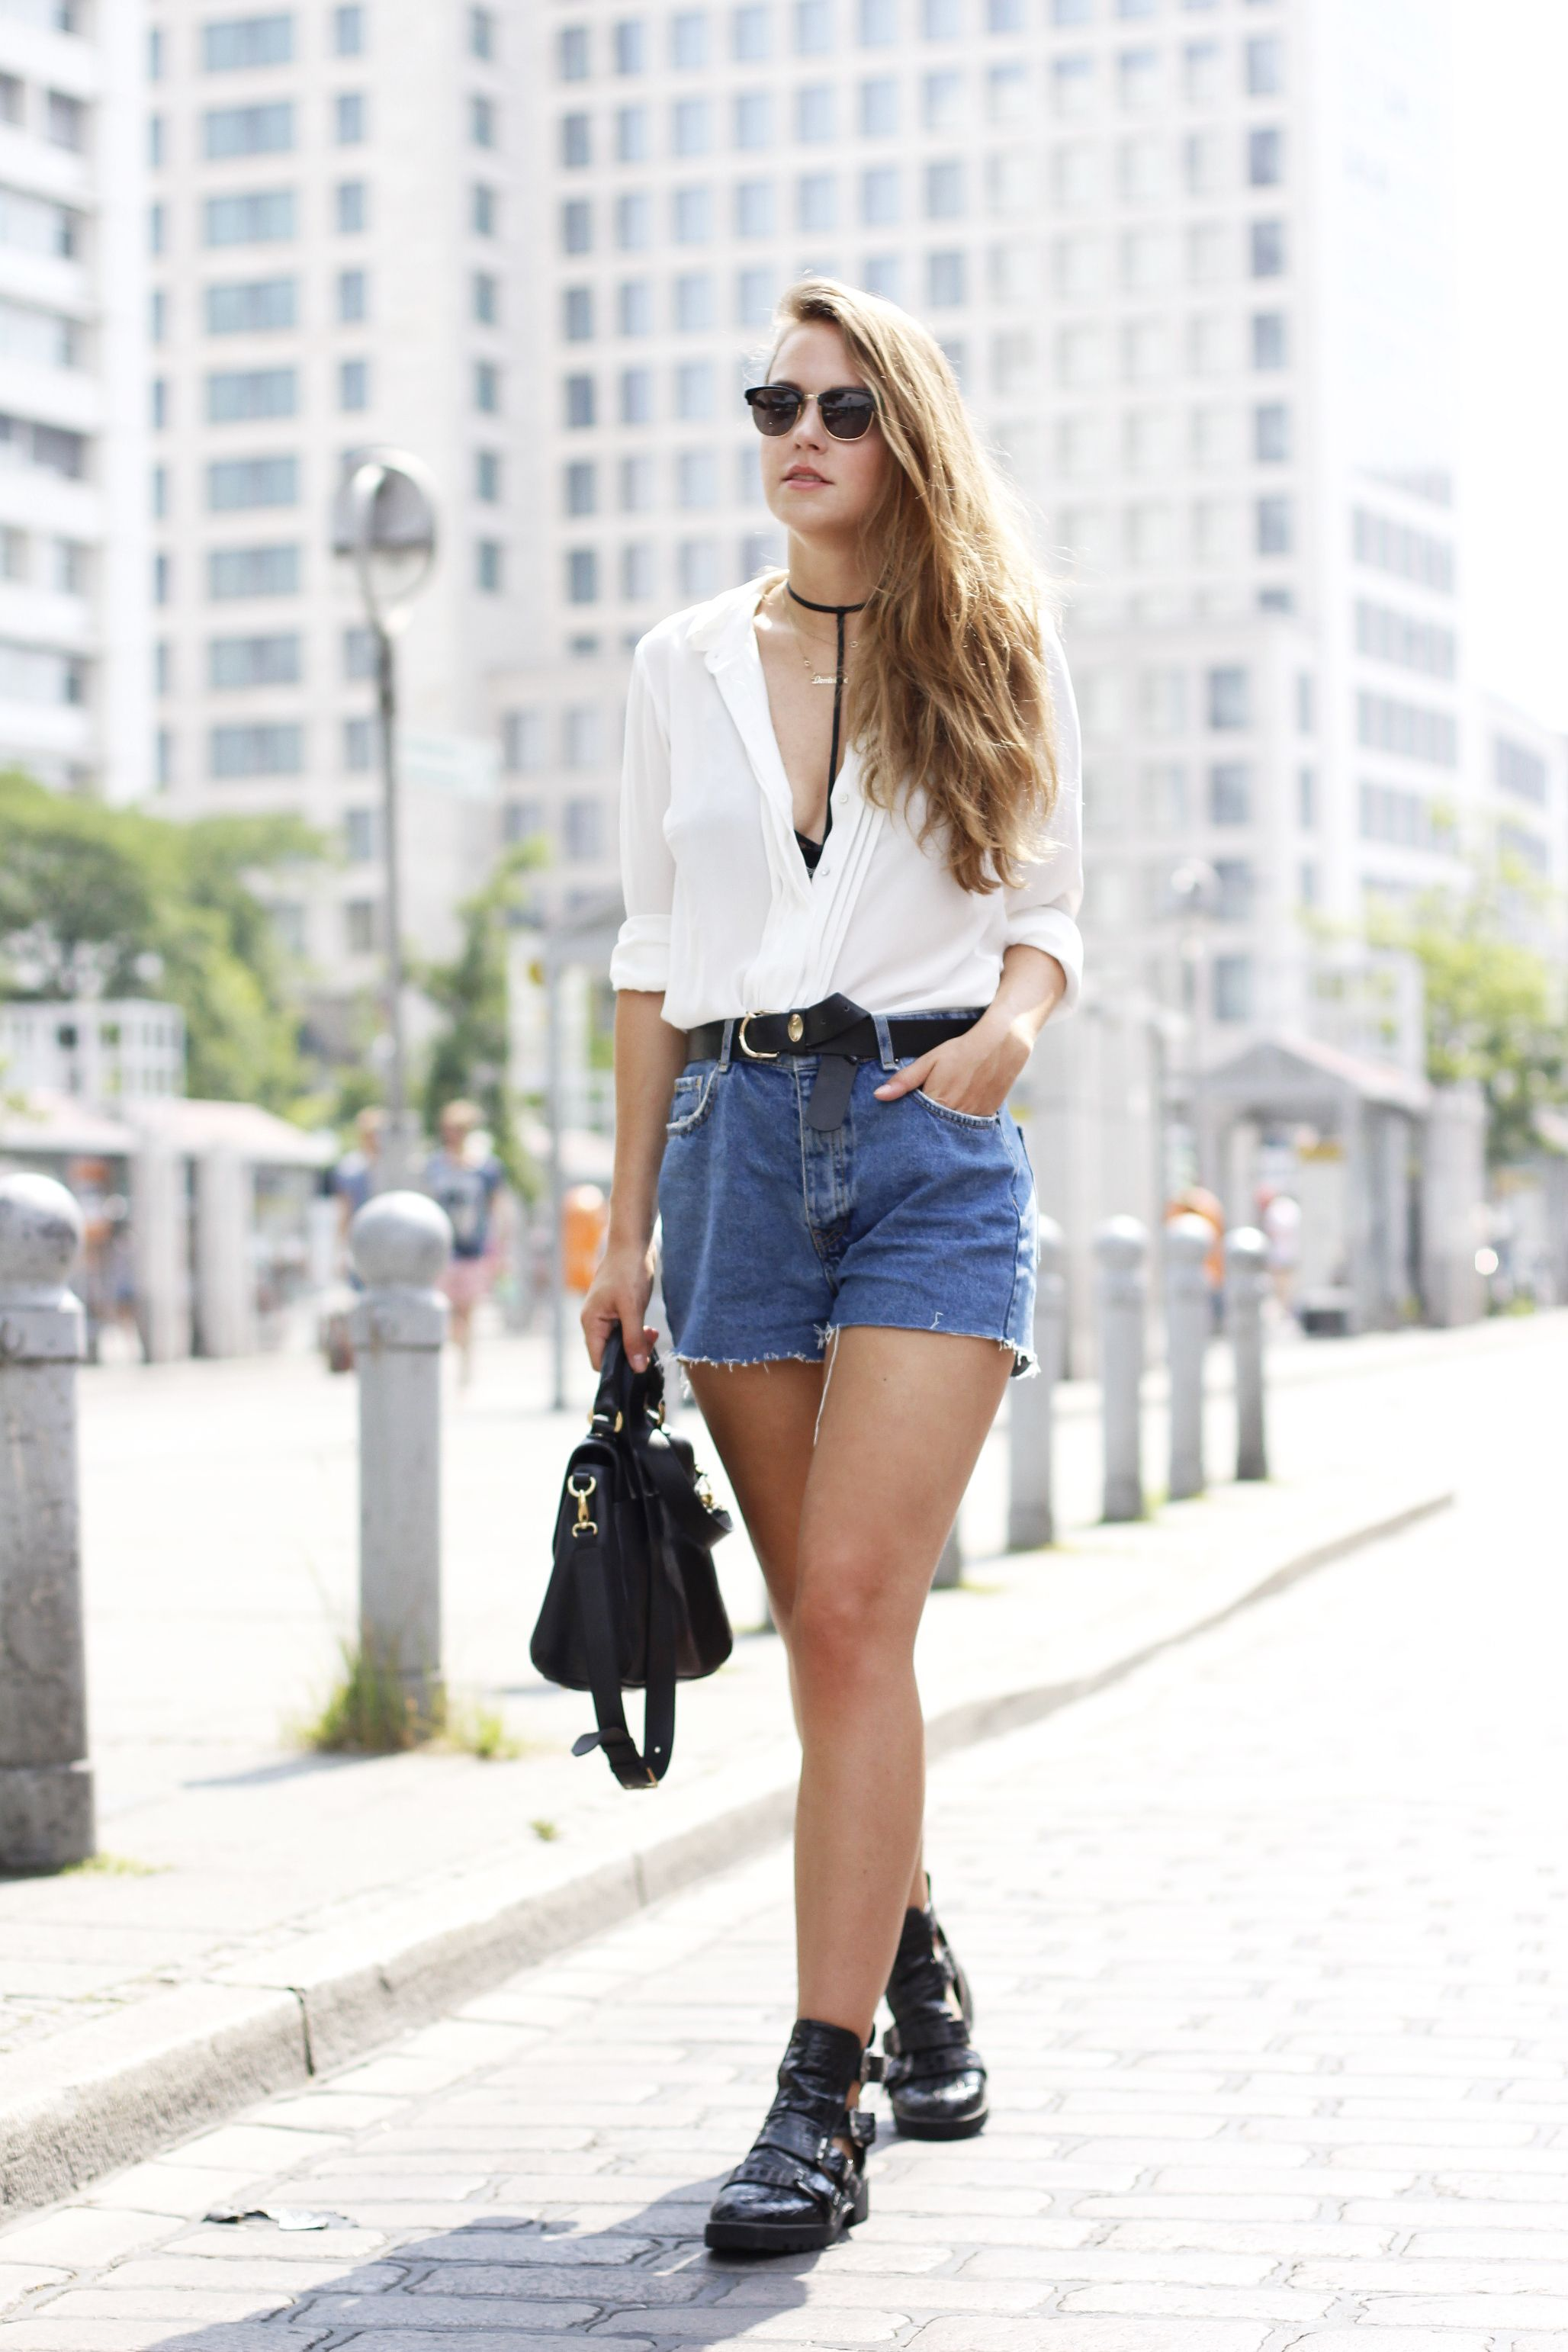 The Denim Shorts You'll Live in All Summer | Denim shorts outfit ...